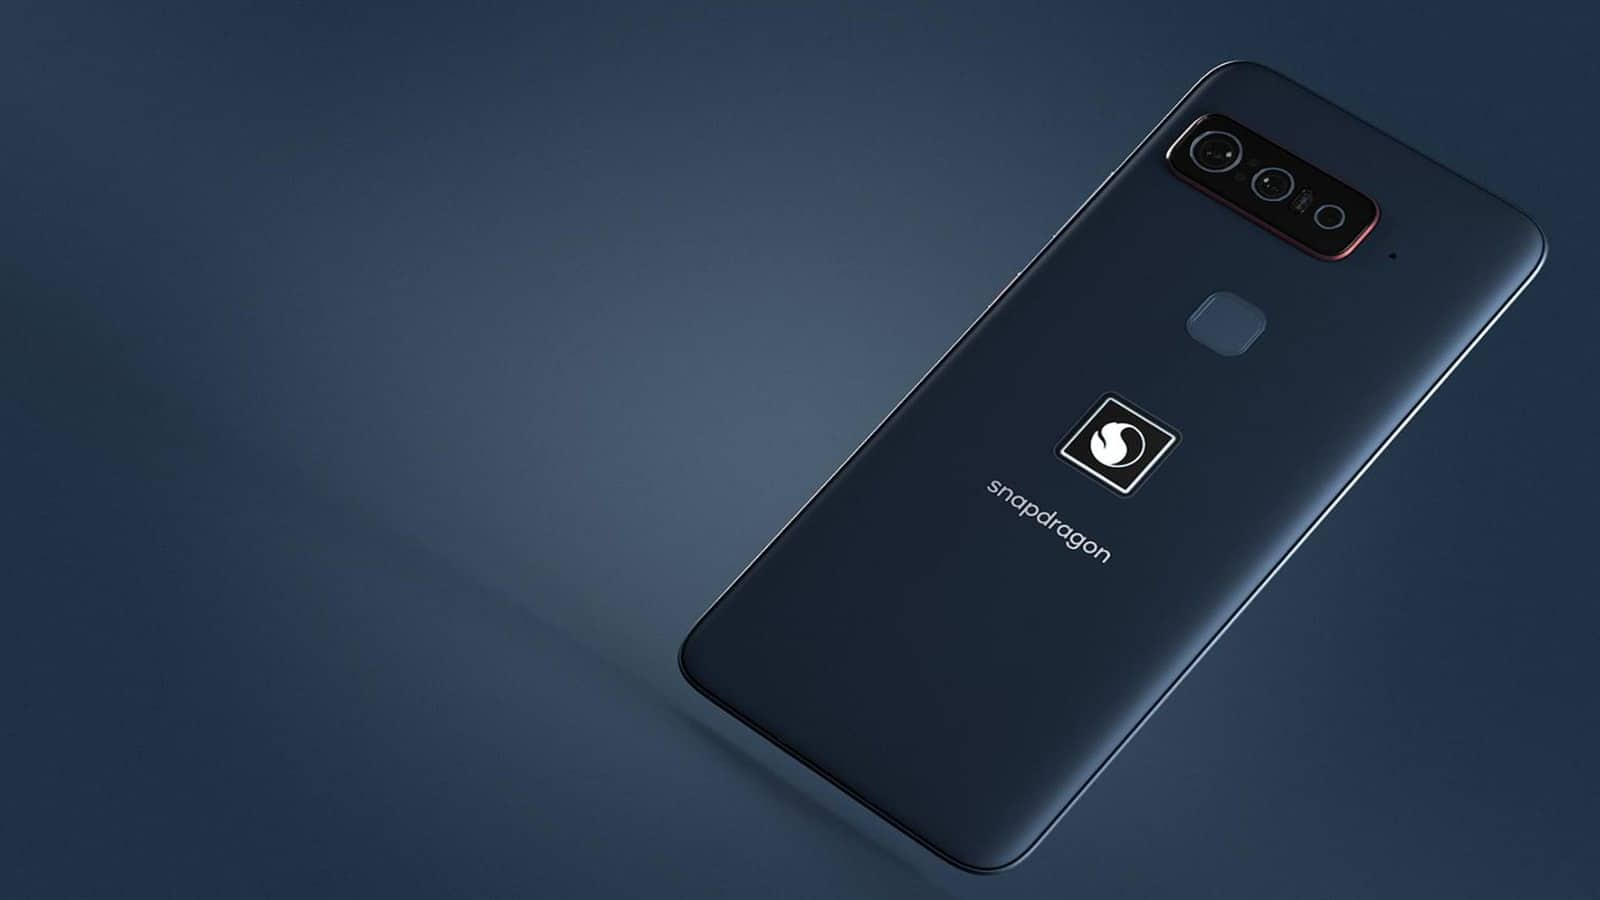 qualcomm-smartphone-unveiled-for-developers-in-collaboration-with-asus - چیکاو